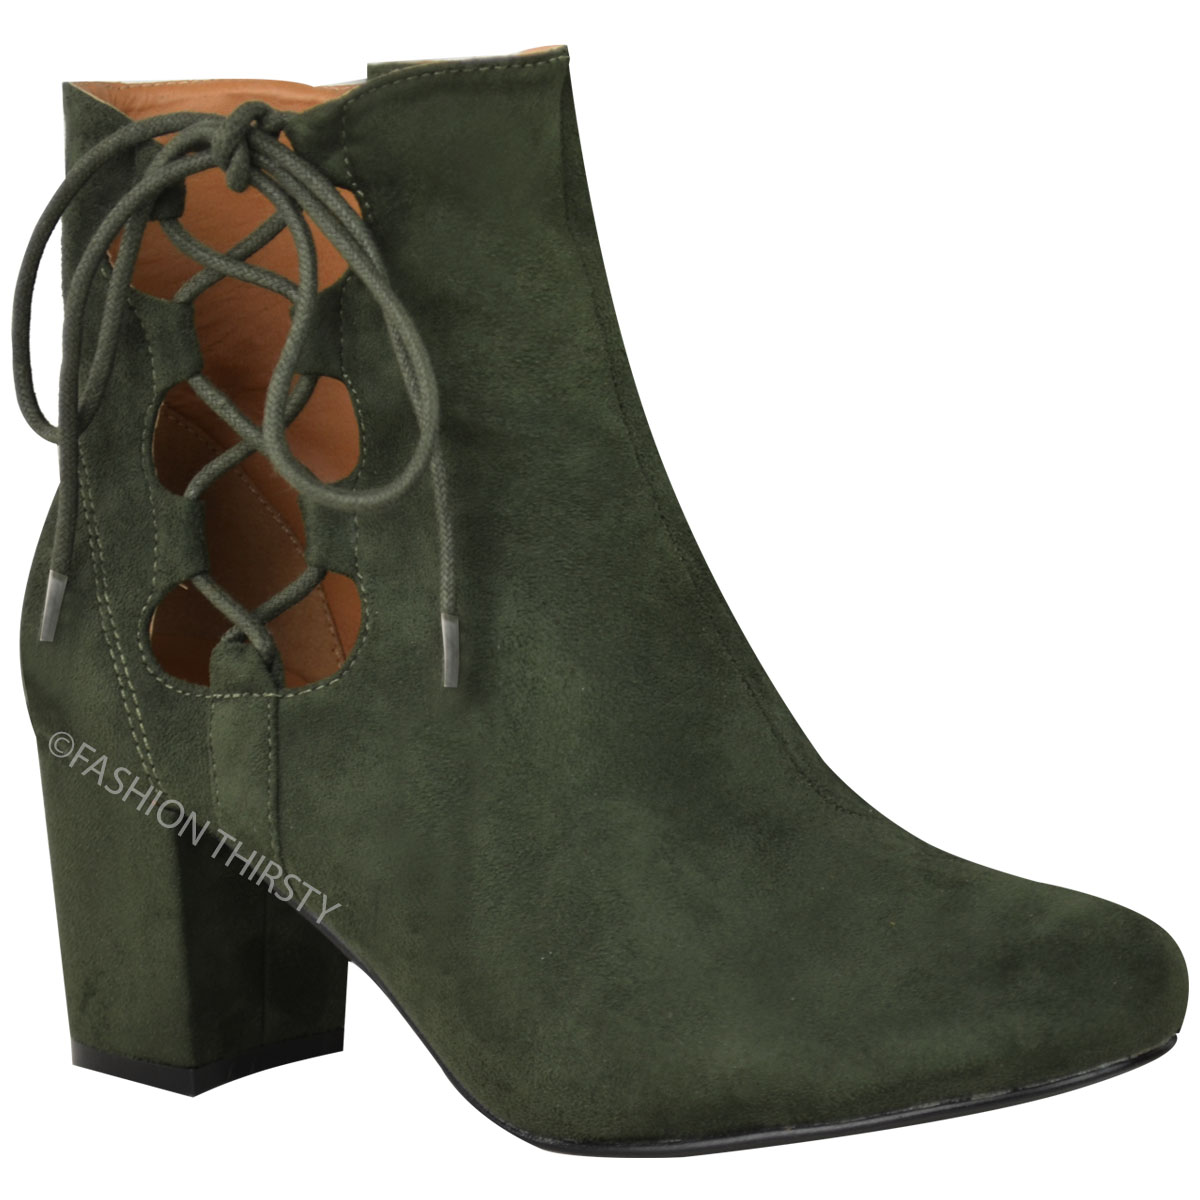 thumbnail 13 - WOMENS-LADIES-LOW-BLOCK-HEEL-CHELSEA-ANKLE-BOOTS-CUT-OUT-LACE-UP-SHOES-NEW-SIZE